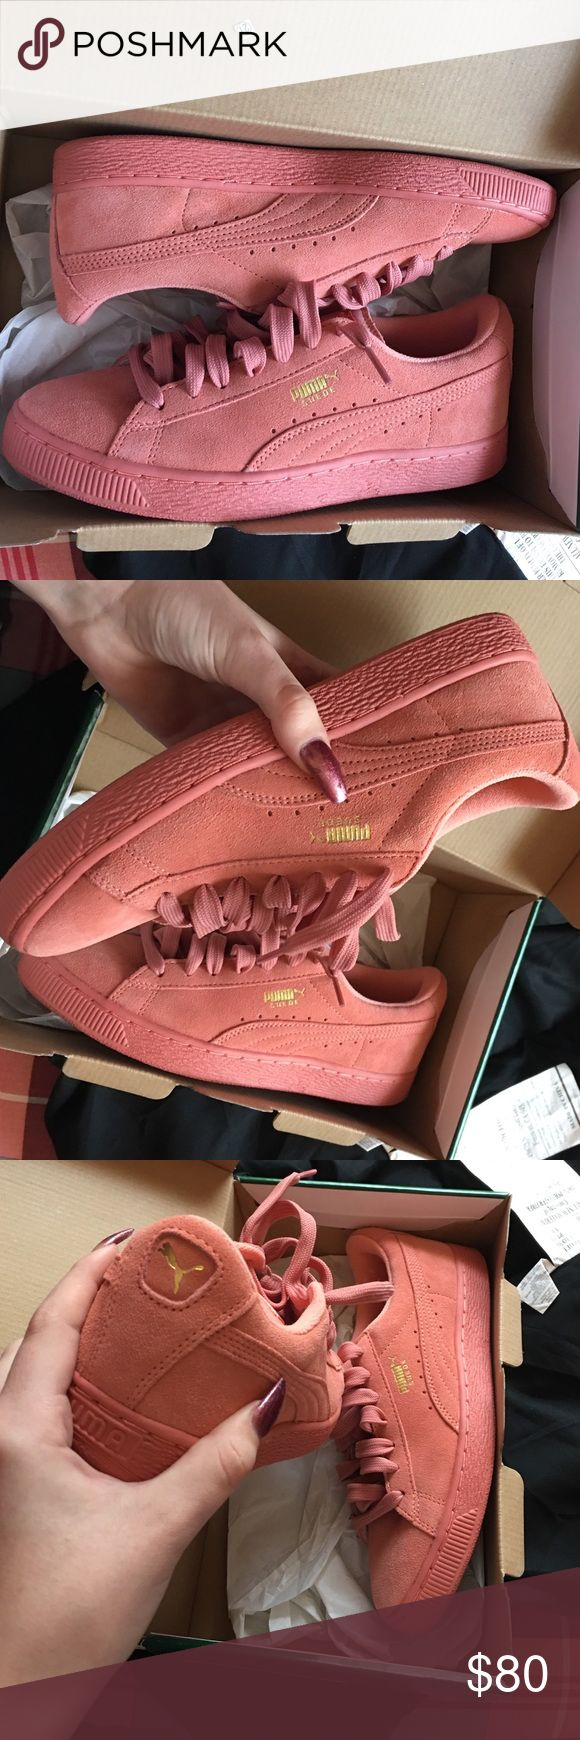 pink suede pumas never worn, bought the wrong size, fits a 7 in kids Puma Shoes